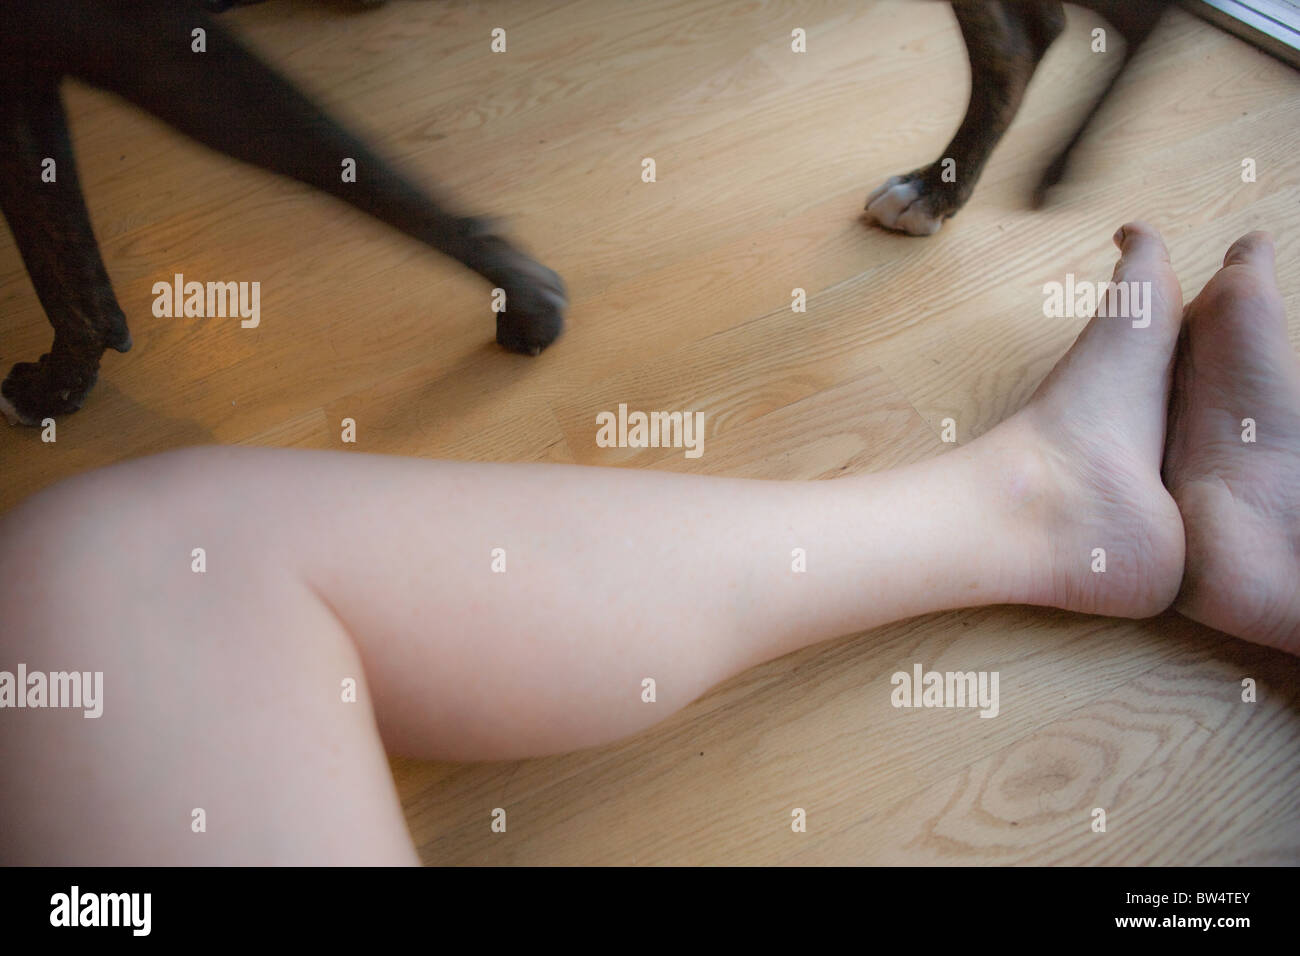 a woman's legs on wood floor with dog legs walking by - Stock Image